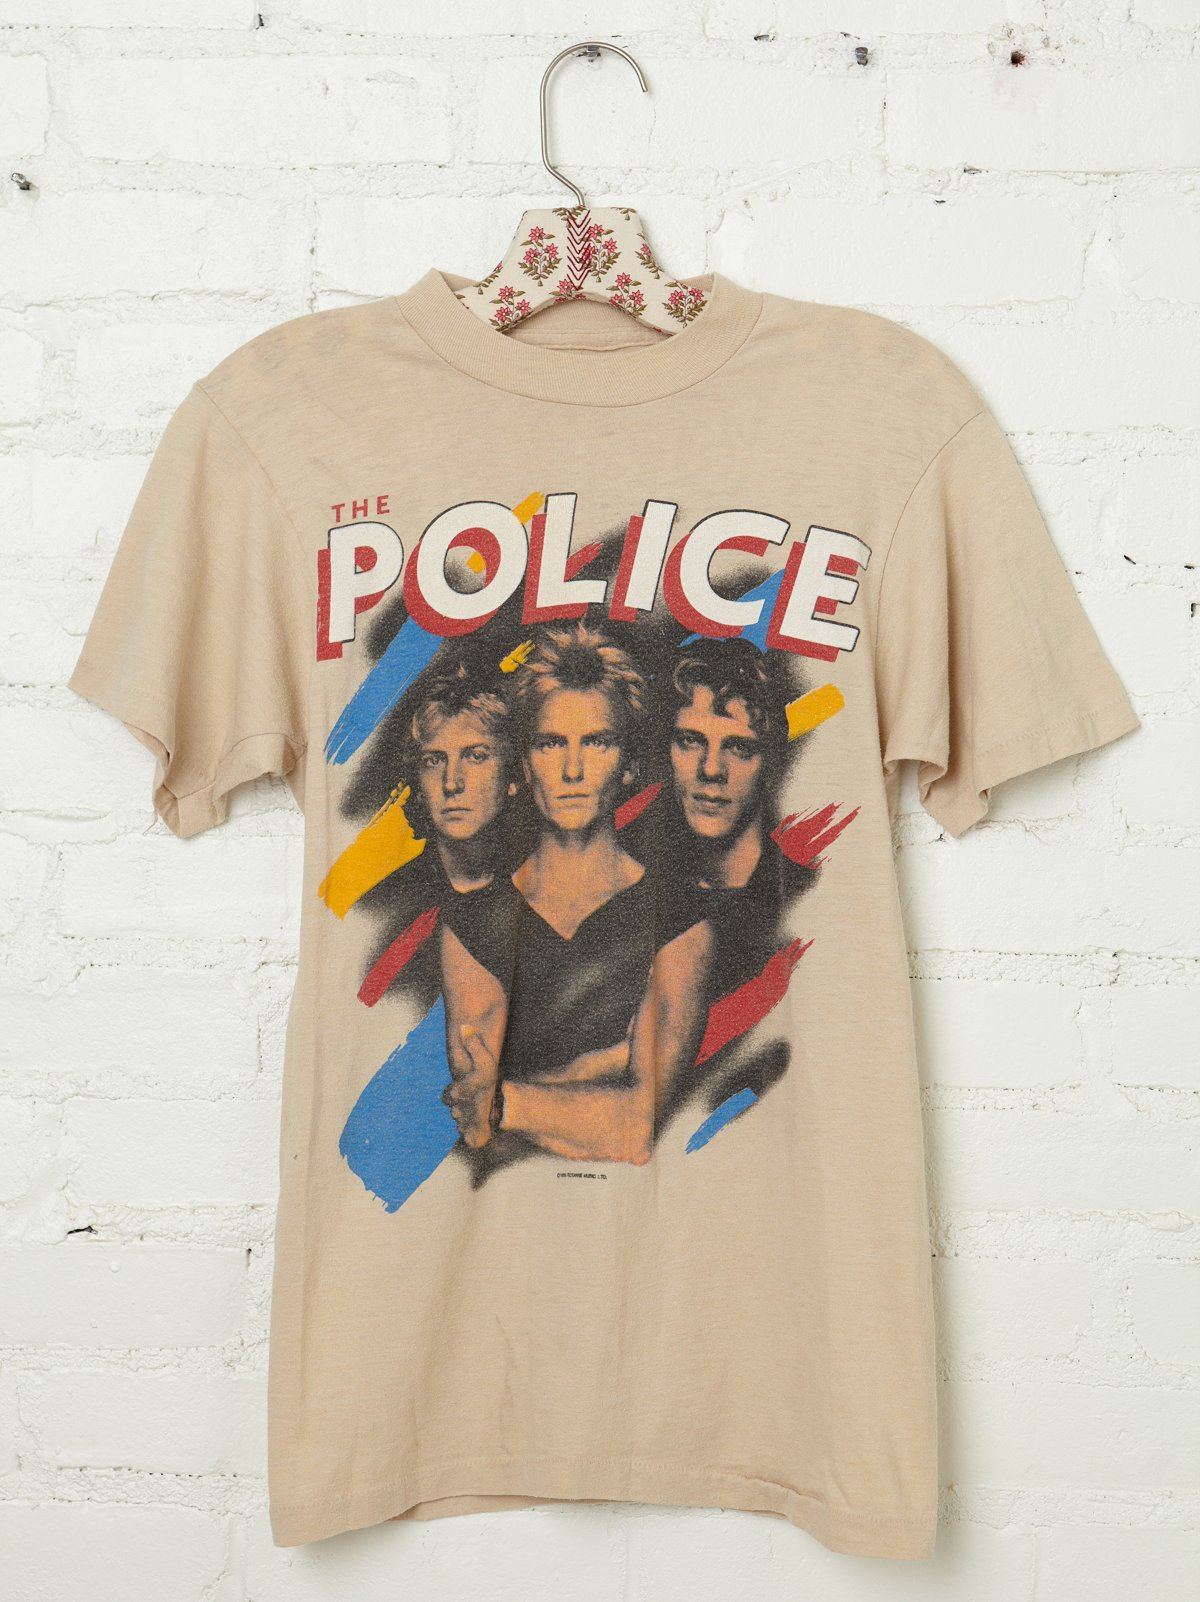 Vintage 1983 The Police Tee